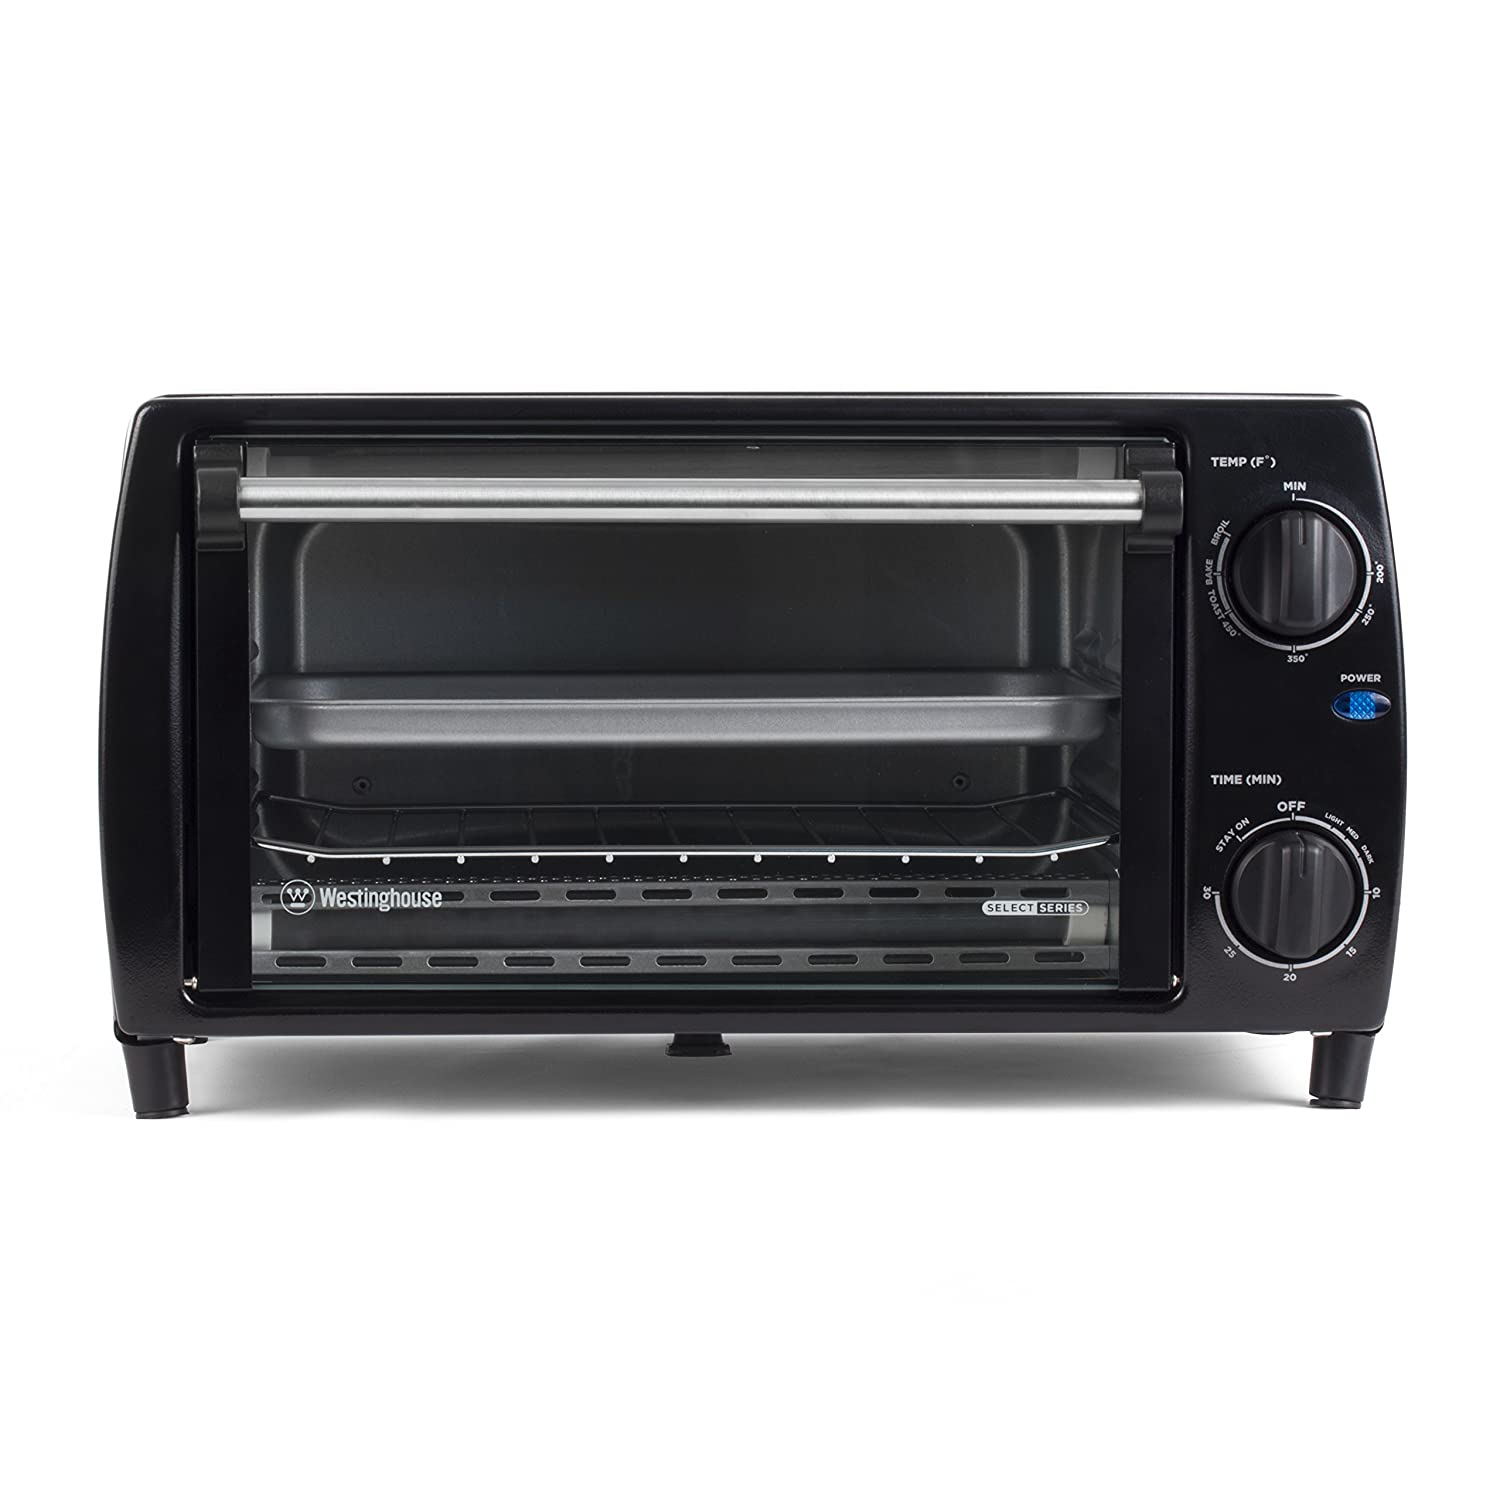 convection toasting dp stainless extra broil wide pan rack countertop decker toaster slice oven black steel bake includes